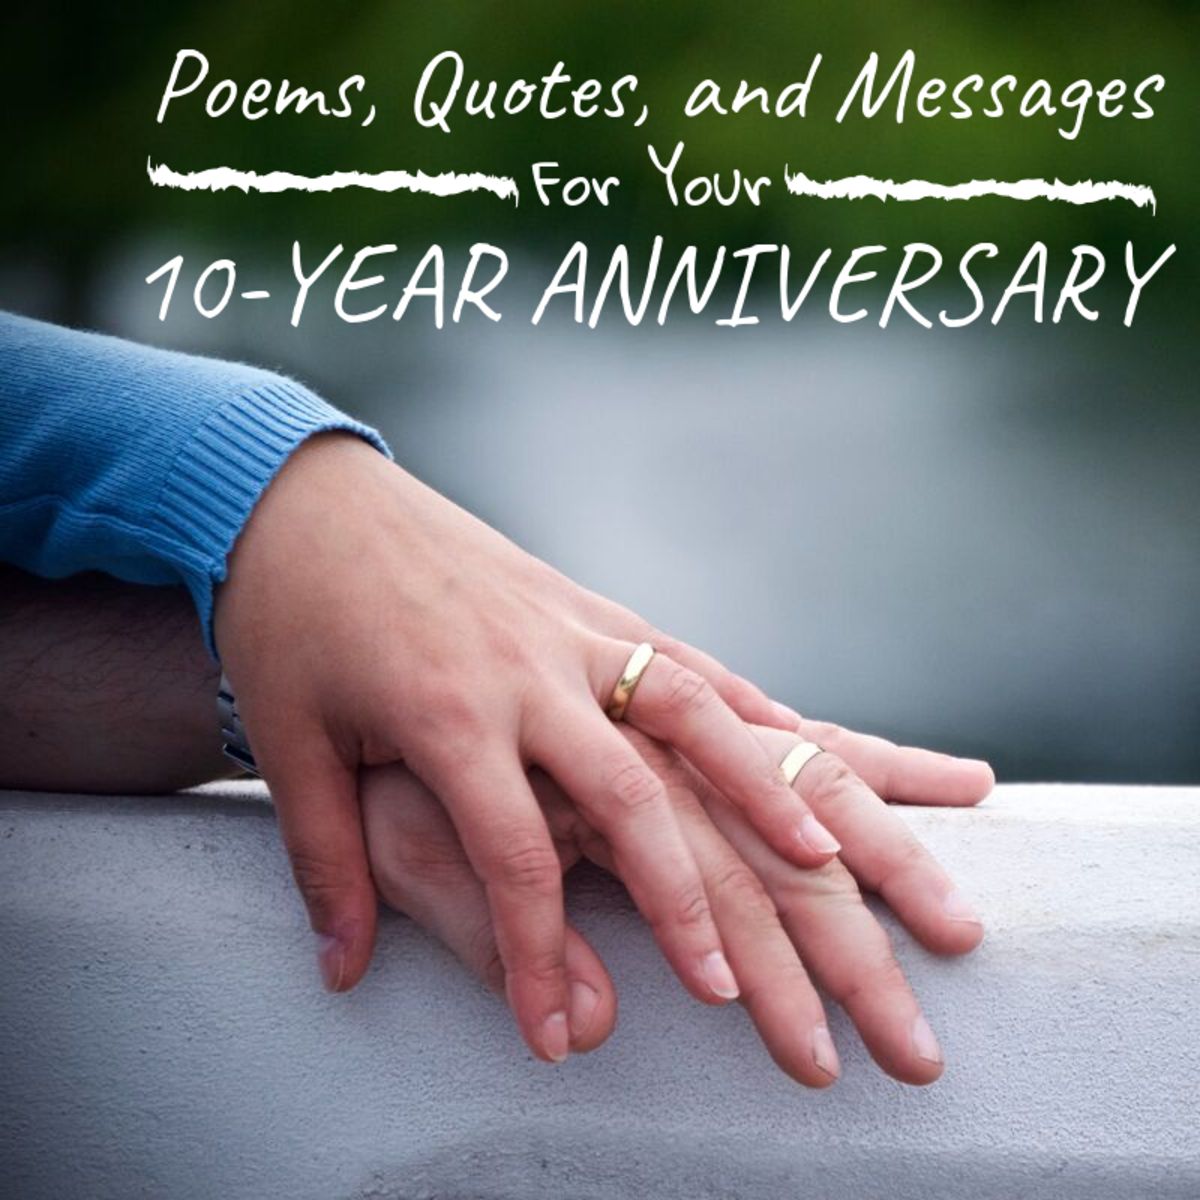 th anniversary wishes quotes and poems to write in a card